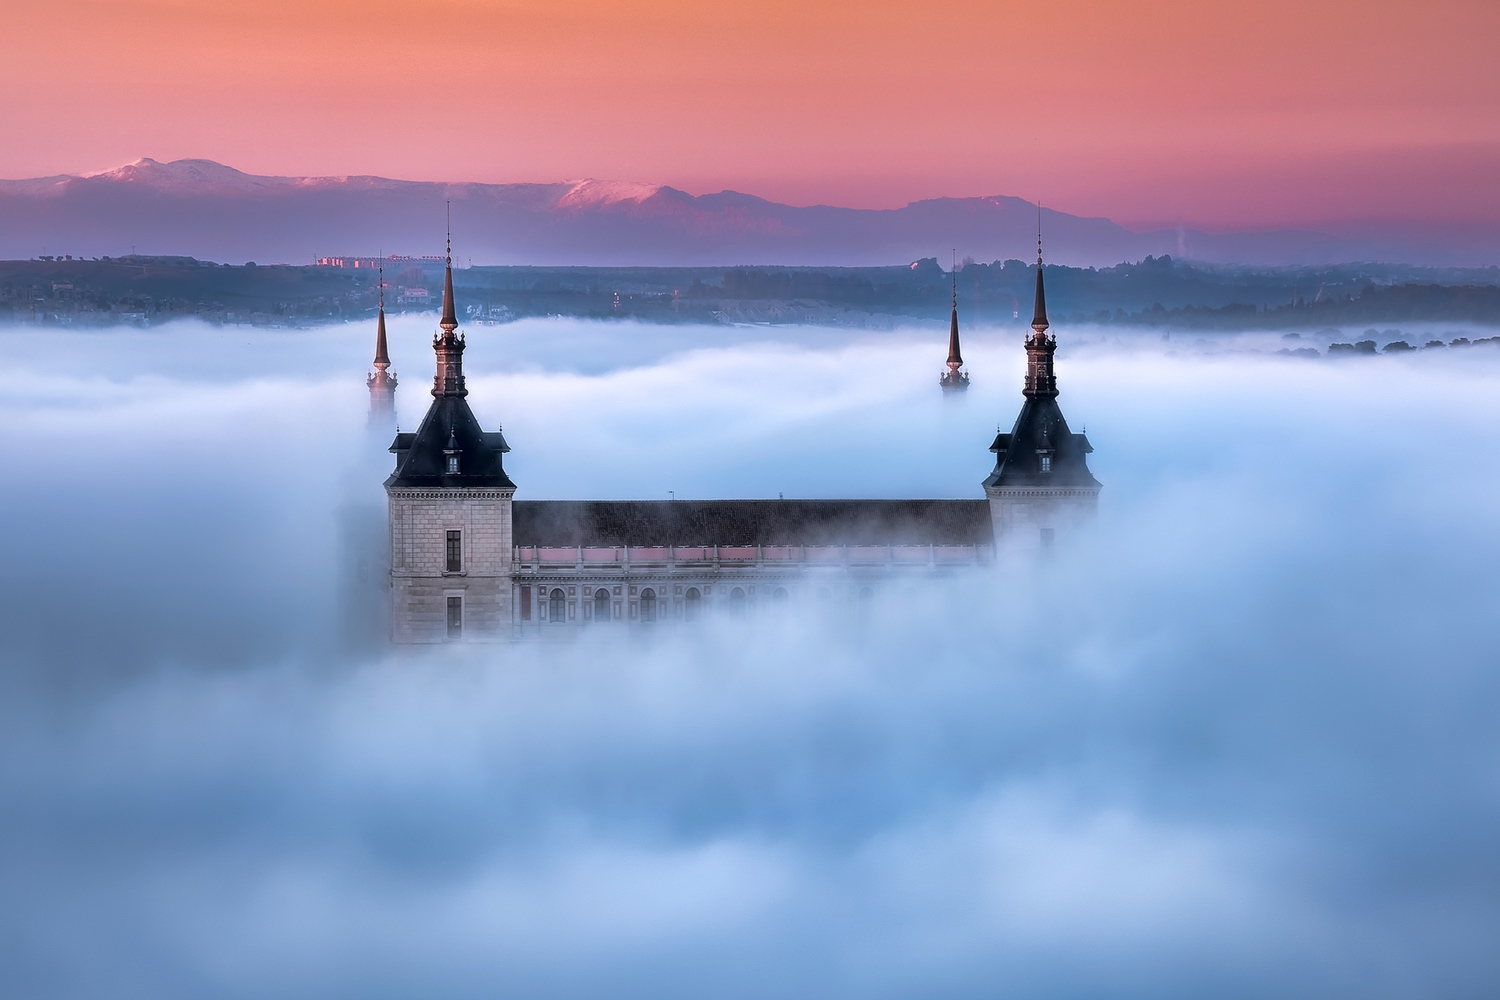 jesusmgarcia_Toledo_city_foggy_sunset_30x20